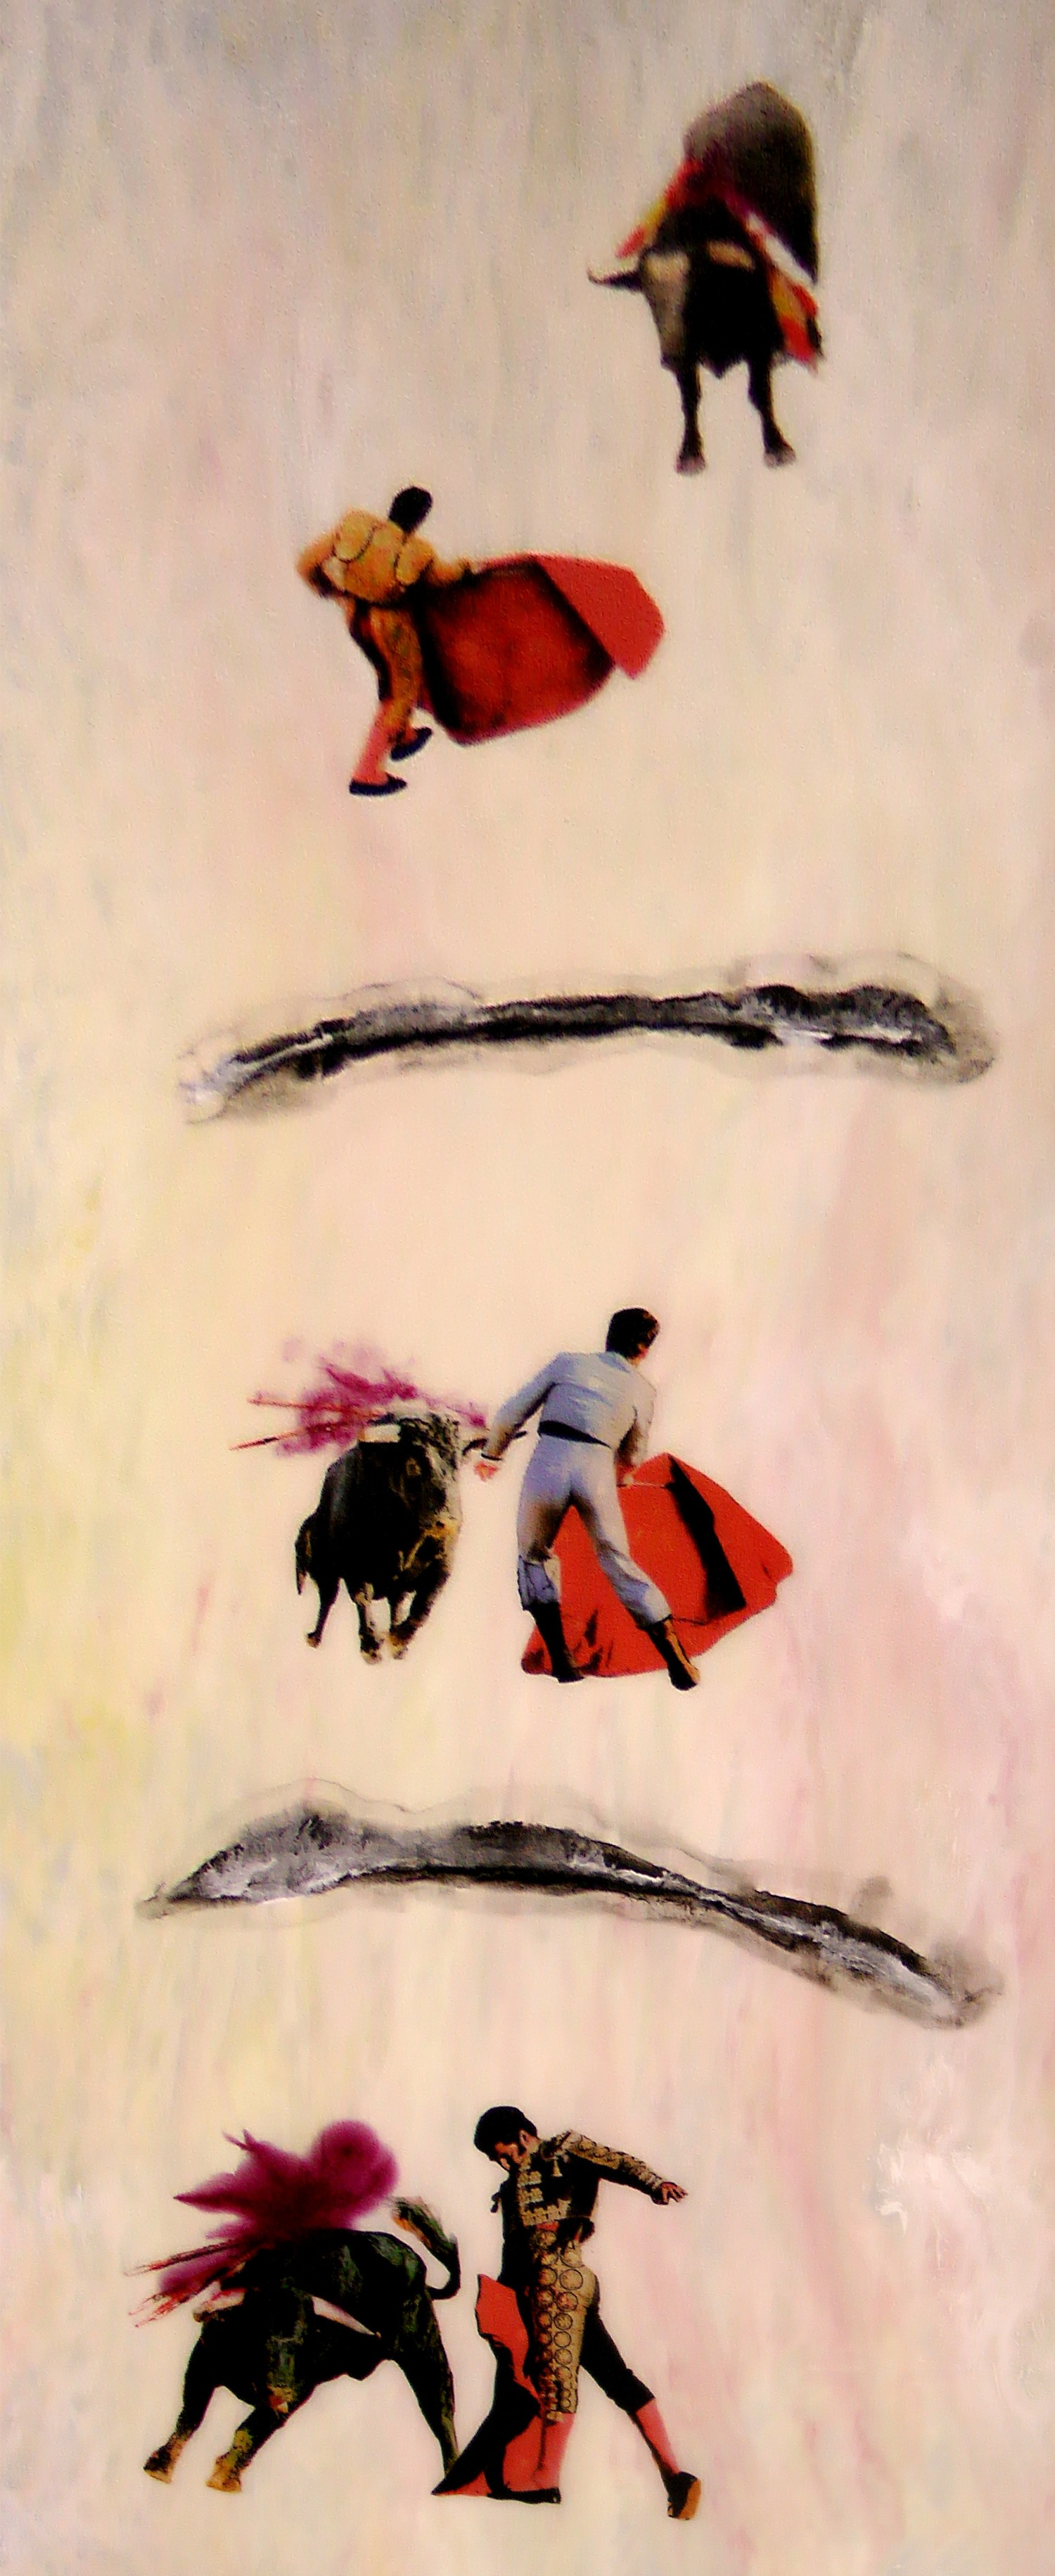 "The Bullfighter, 2012 72"" x 28"" Mixed Media on Glass Sold"